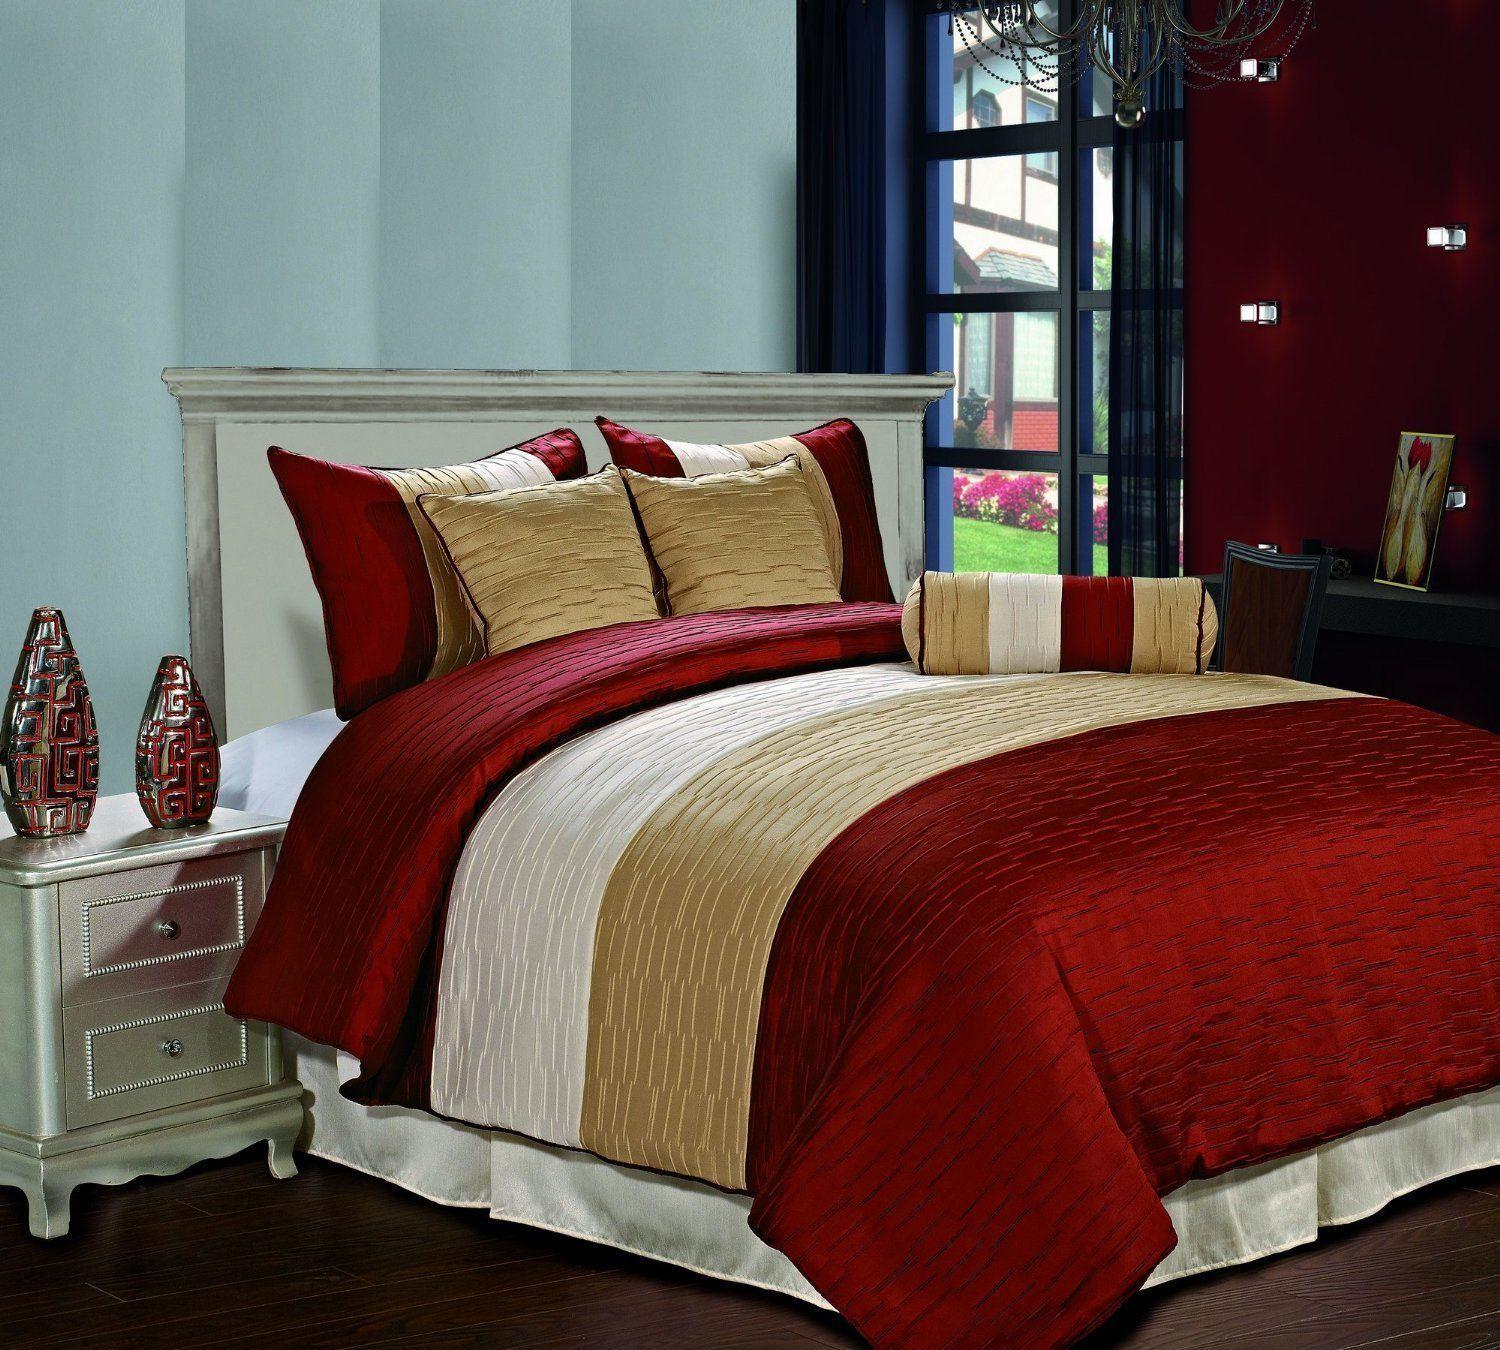 Cozy Beddings forter Set 19 customer reviews and 31 listings